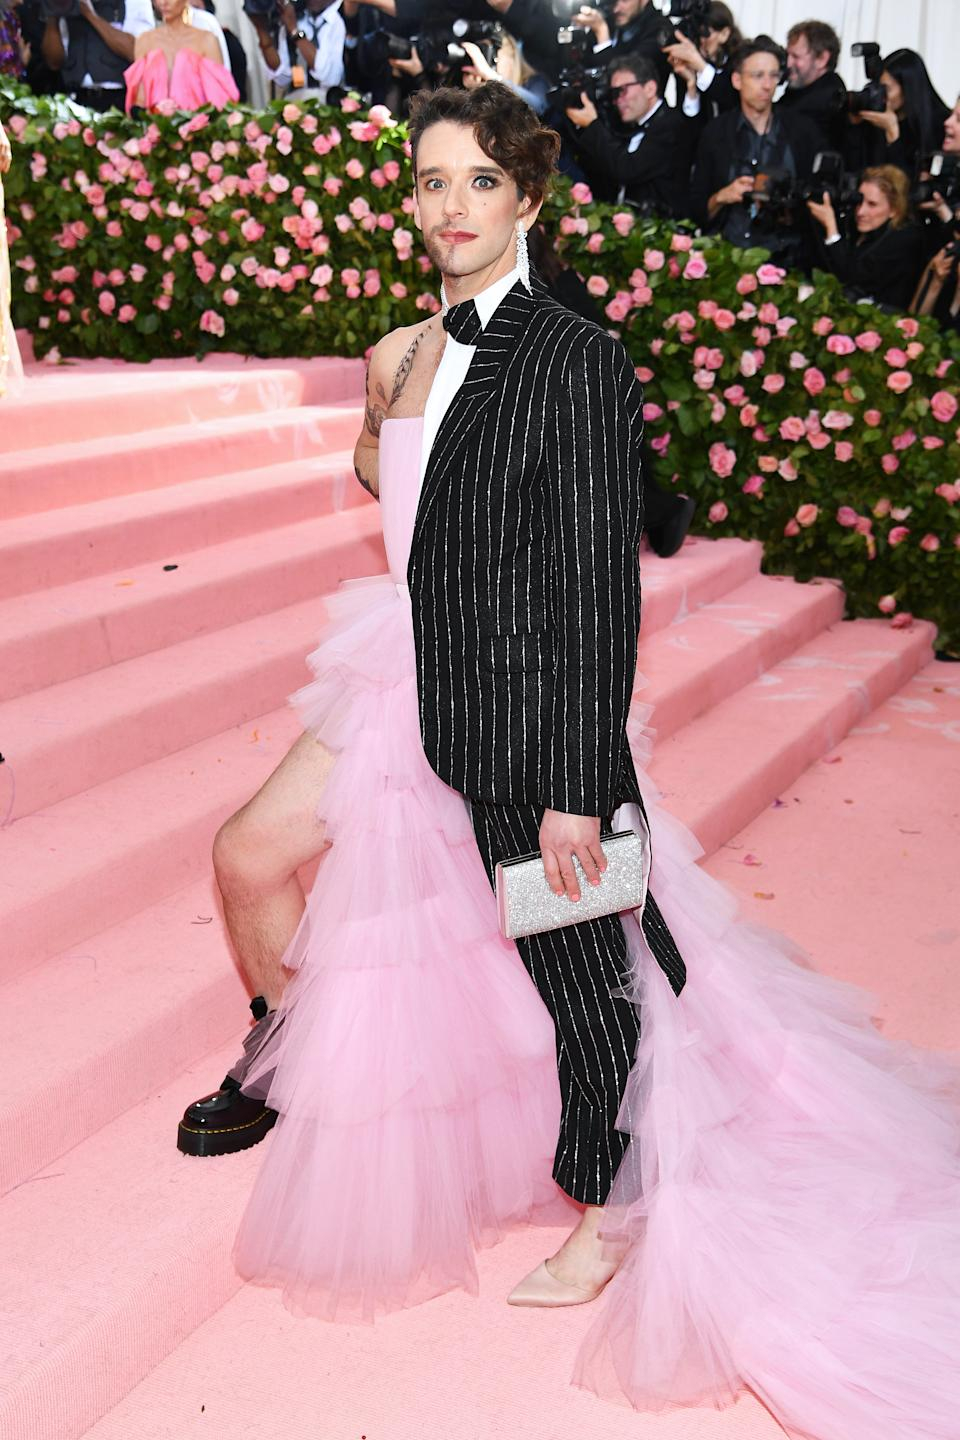 Actor Michael Urie pushed the boundaries of the theme, arriving in an ensemble that featured both a suit and dress. Photo: Getty Images